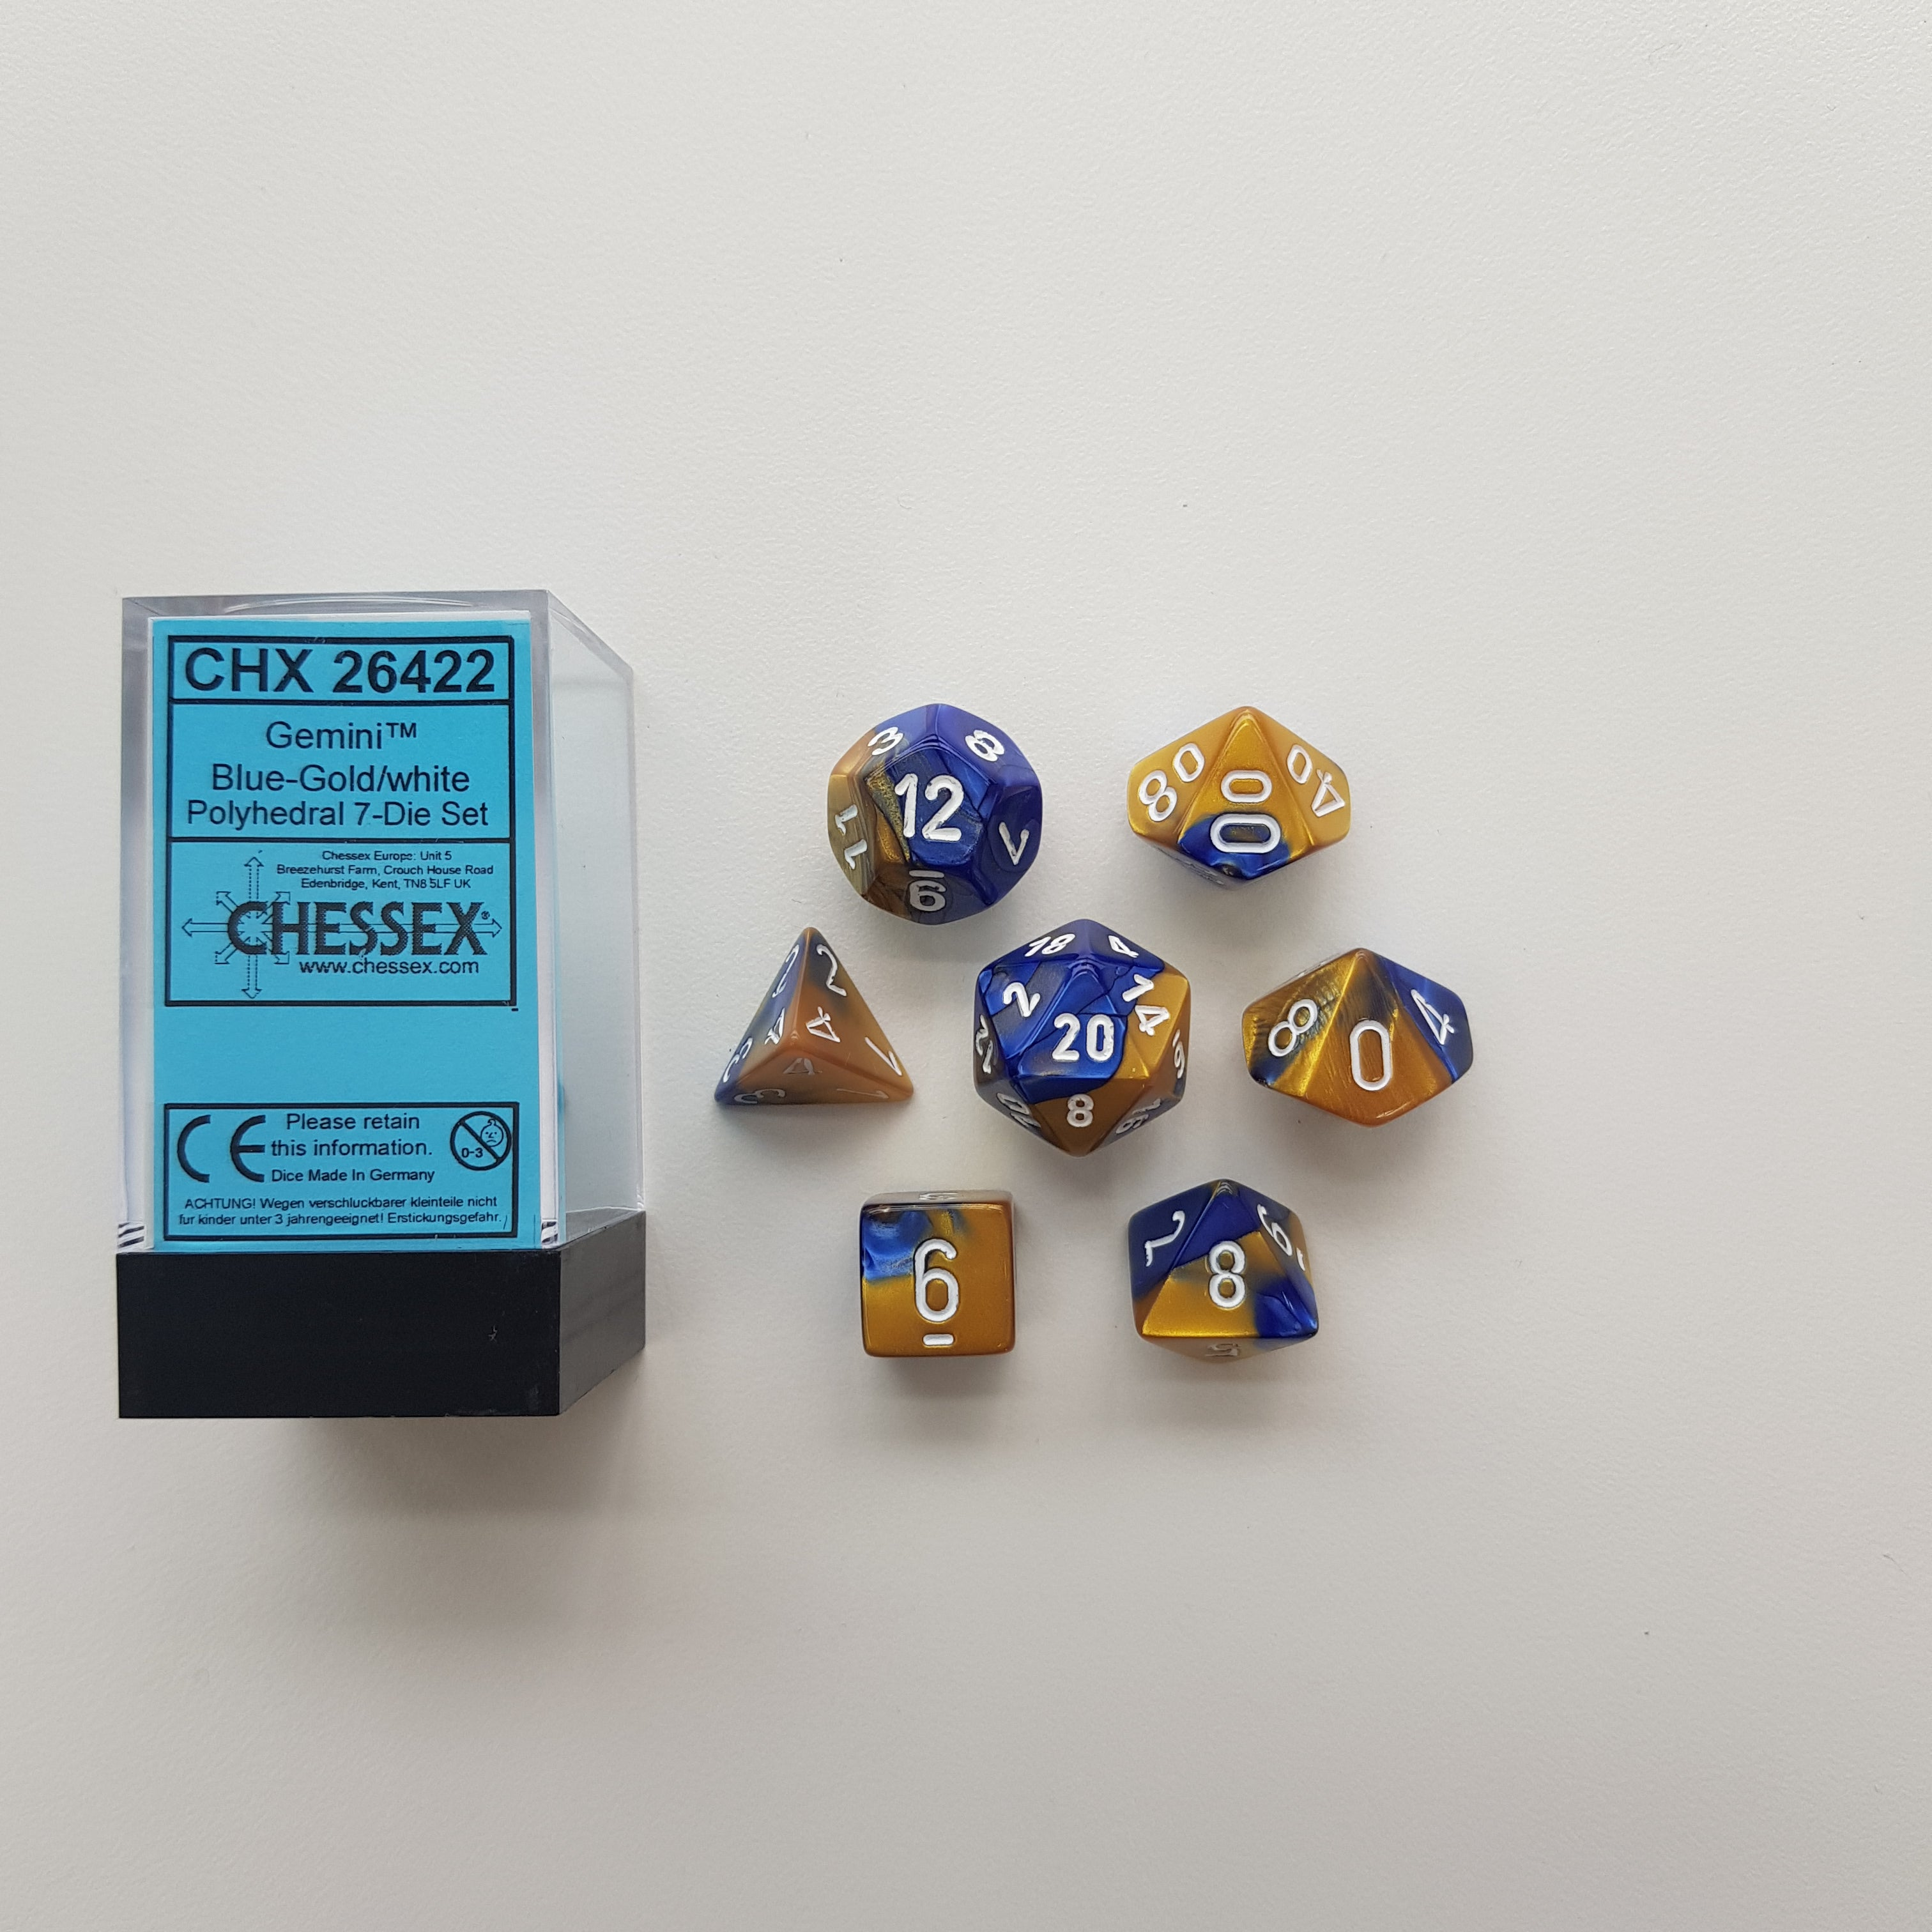 Chessex Blue-Gold/White Gemini Polyhedral Dice Set (CHX26422) | Sunny Pair'O'Dice